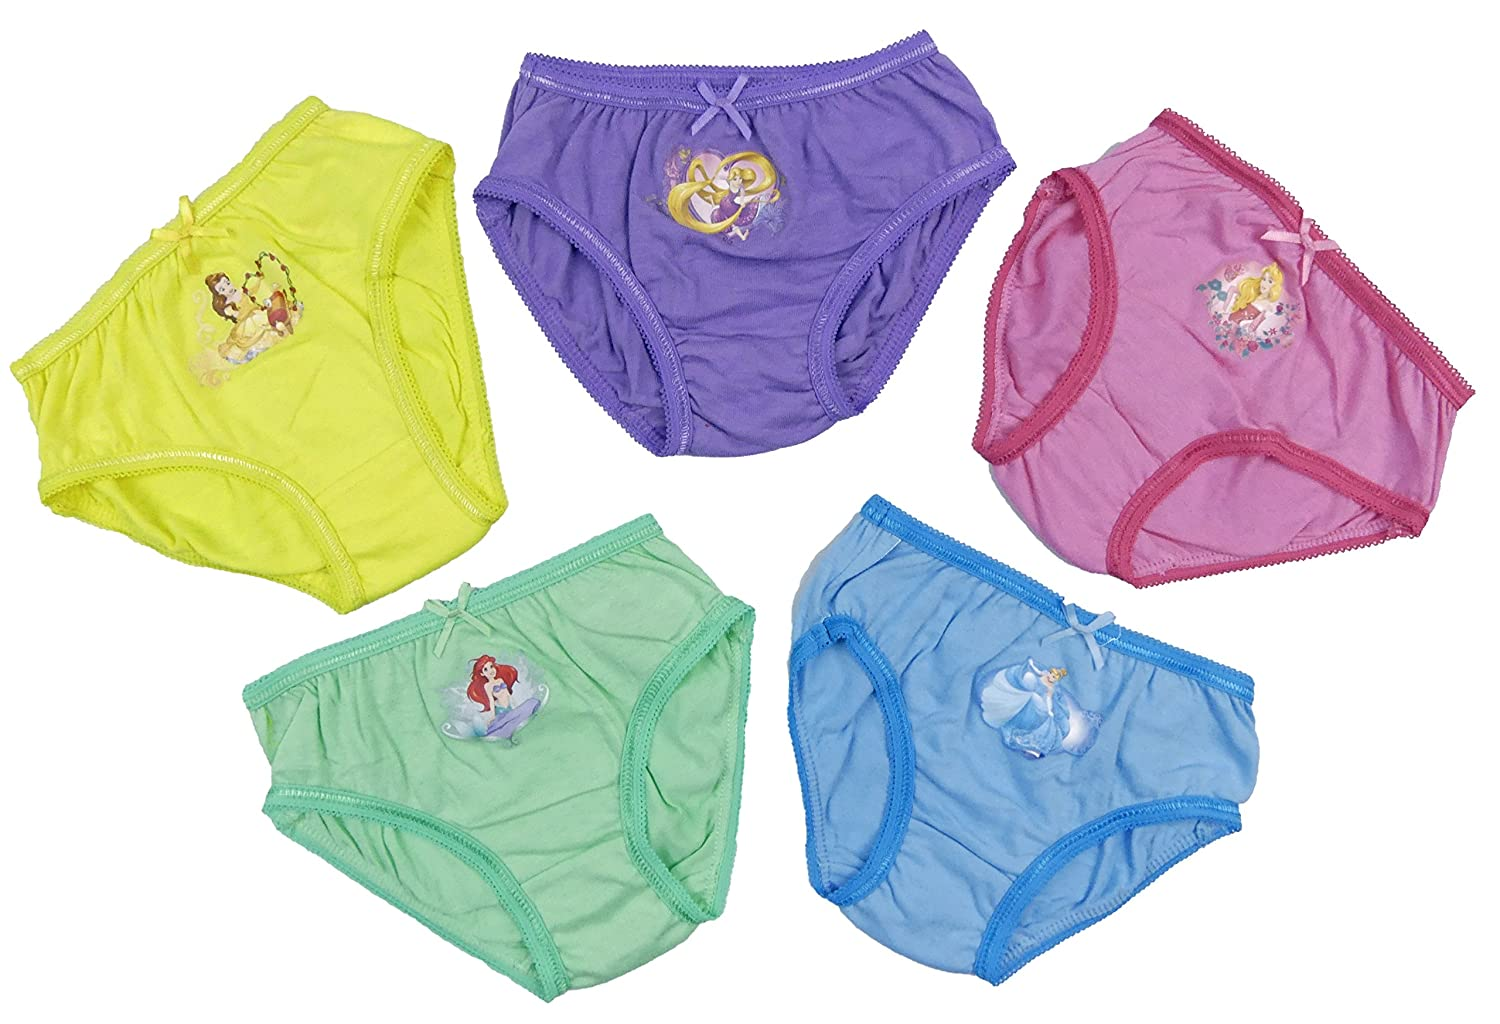 Disney Princess Cotton Briefs Pants Slips Underwear Five Pack 2-3 Up to 6-7 Year